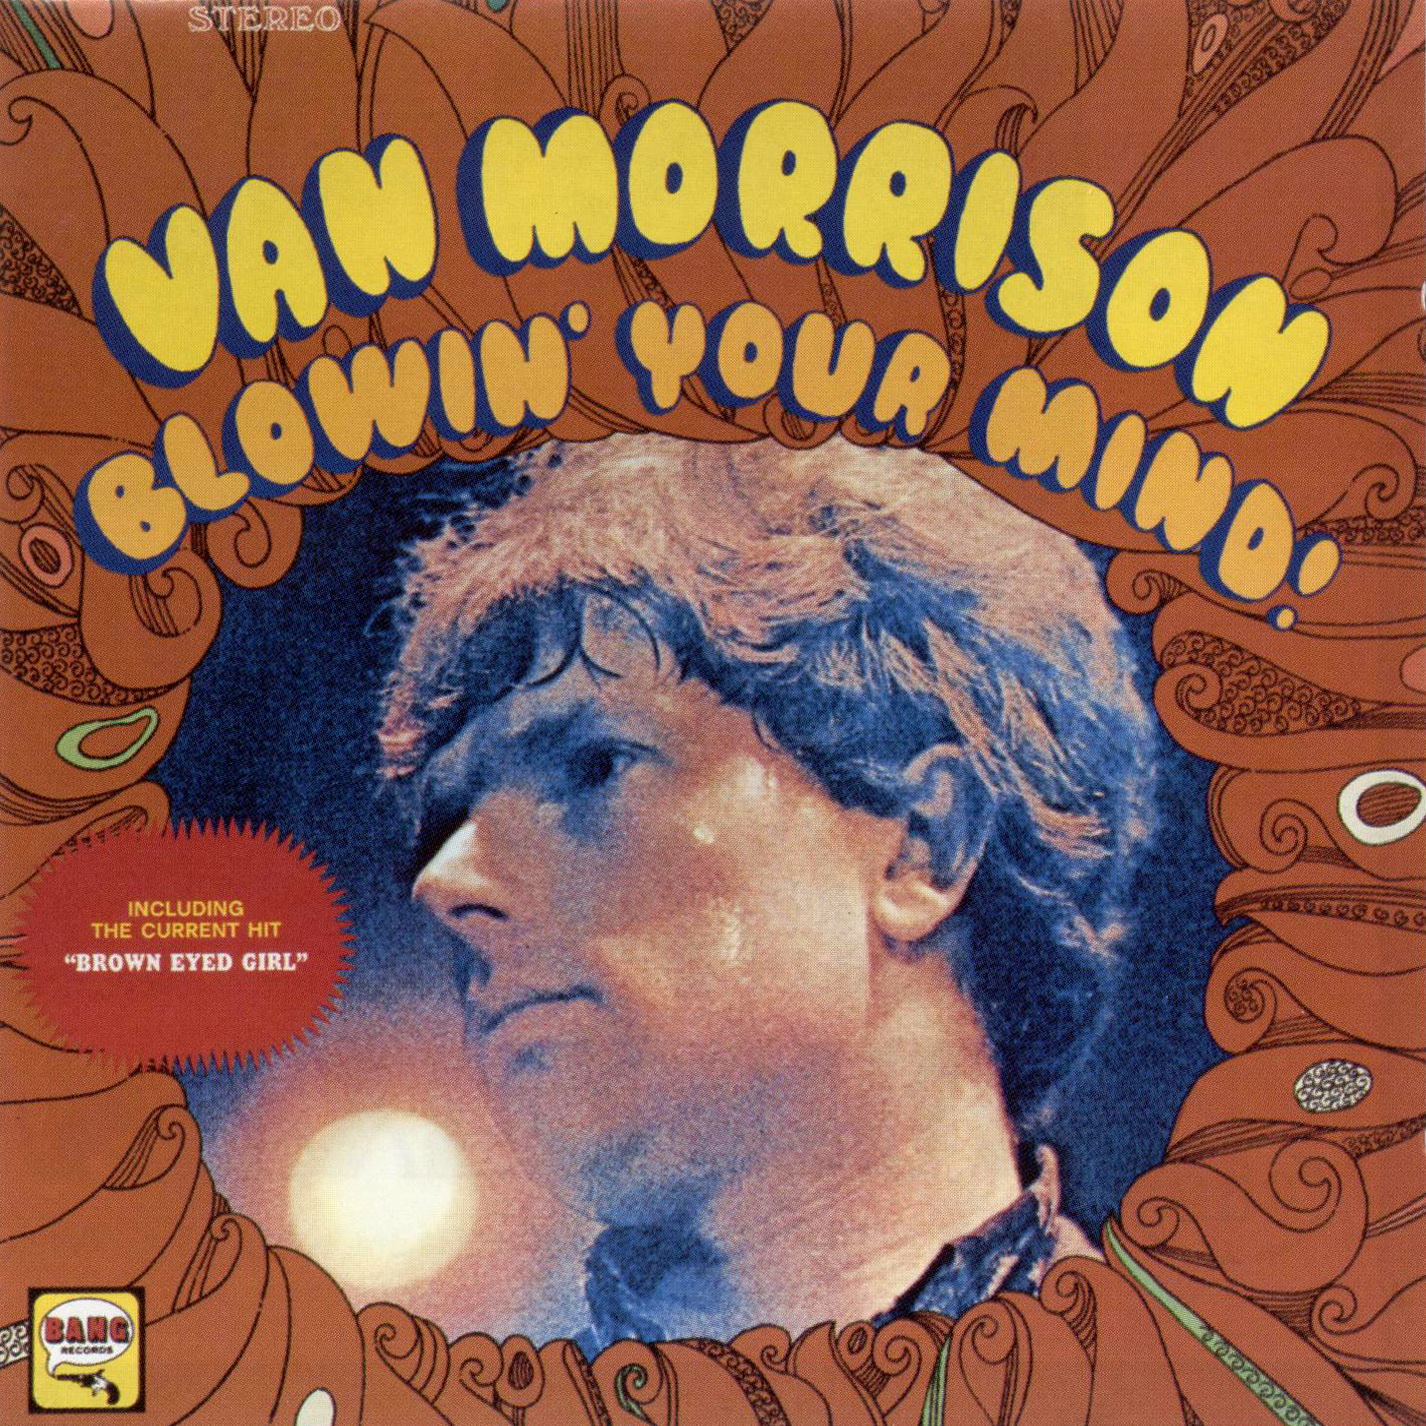 Van Morrison - Blowin' Your Mind!